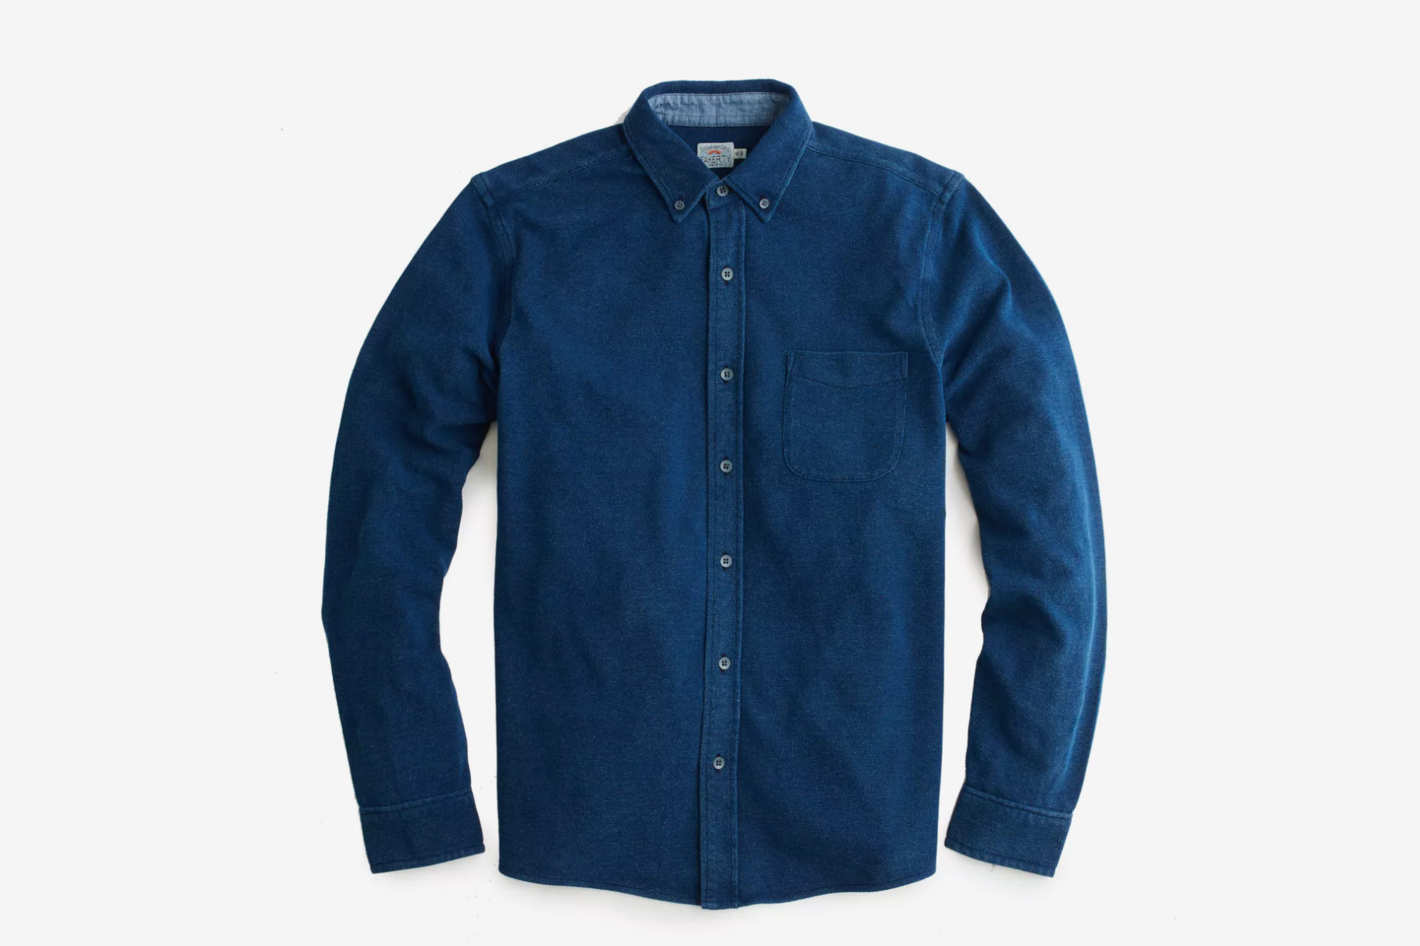 Faherty Brand Indigo Knit Pacific Shirt